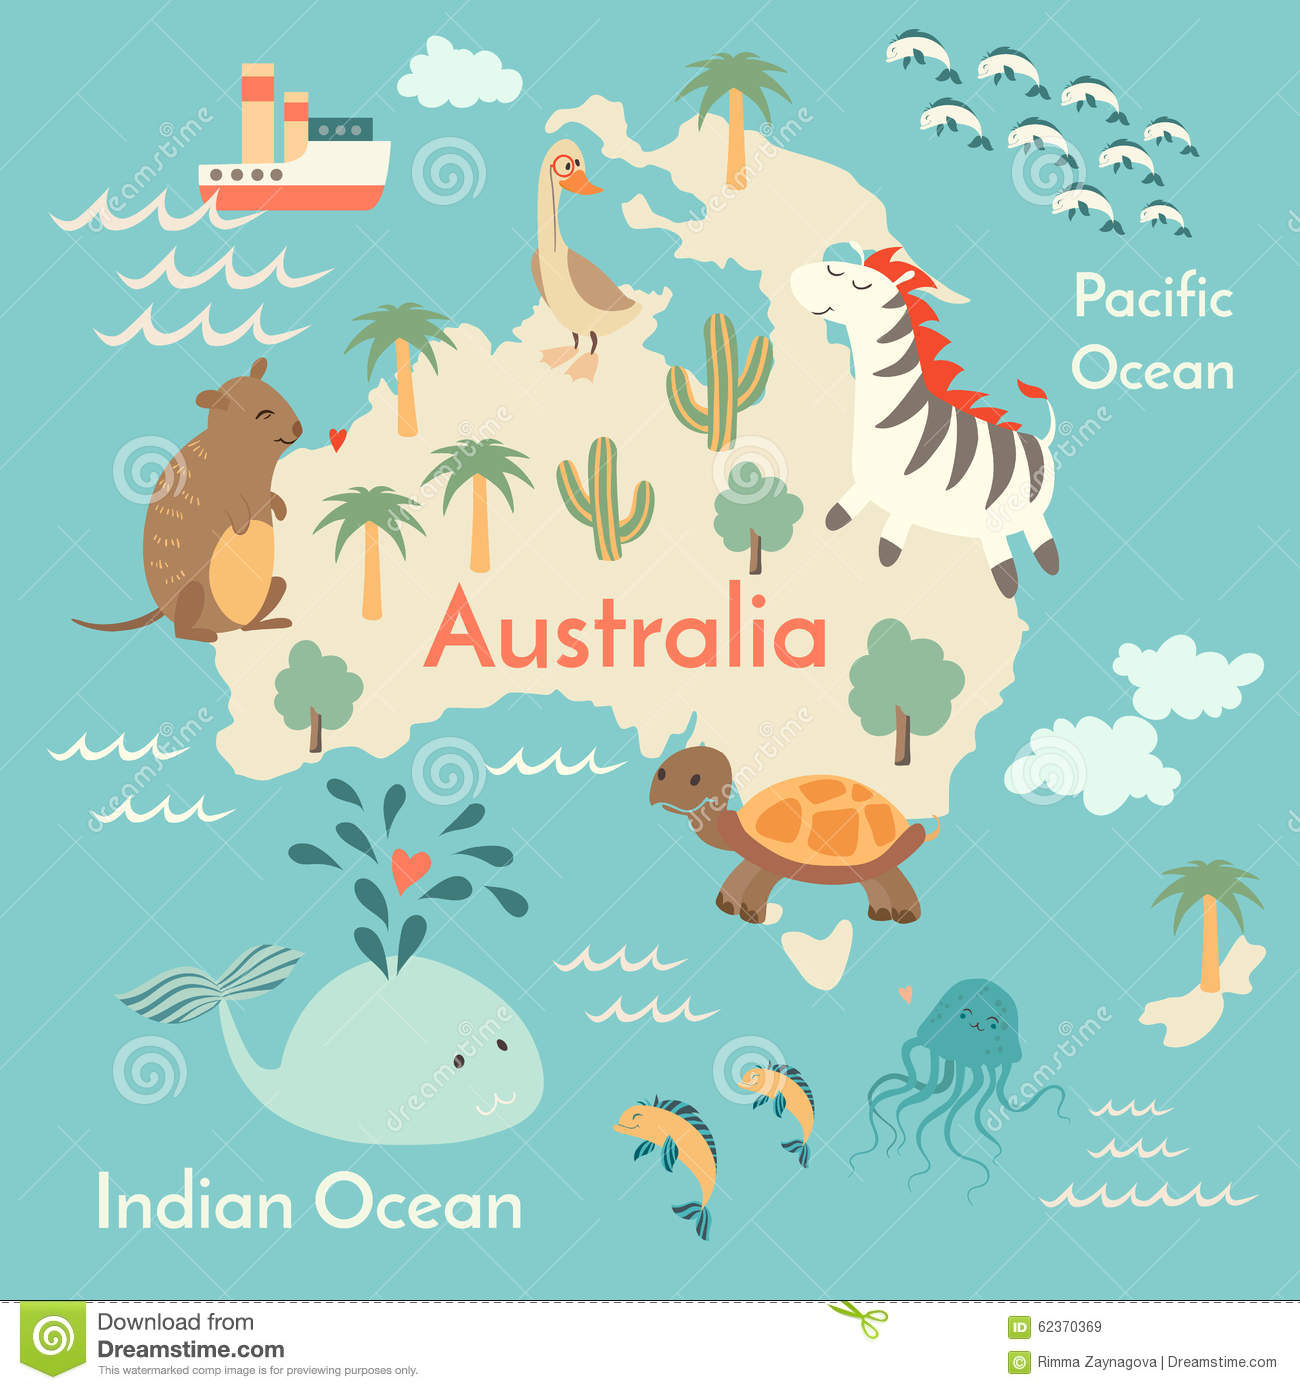 Animals world map australia stock vector illustration of cute download animals world map australia stock vector illustration of cute cartoon 62370369 gumiabroncs Images